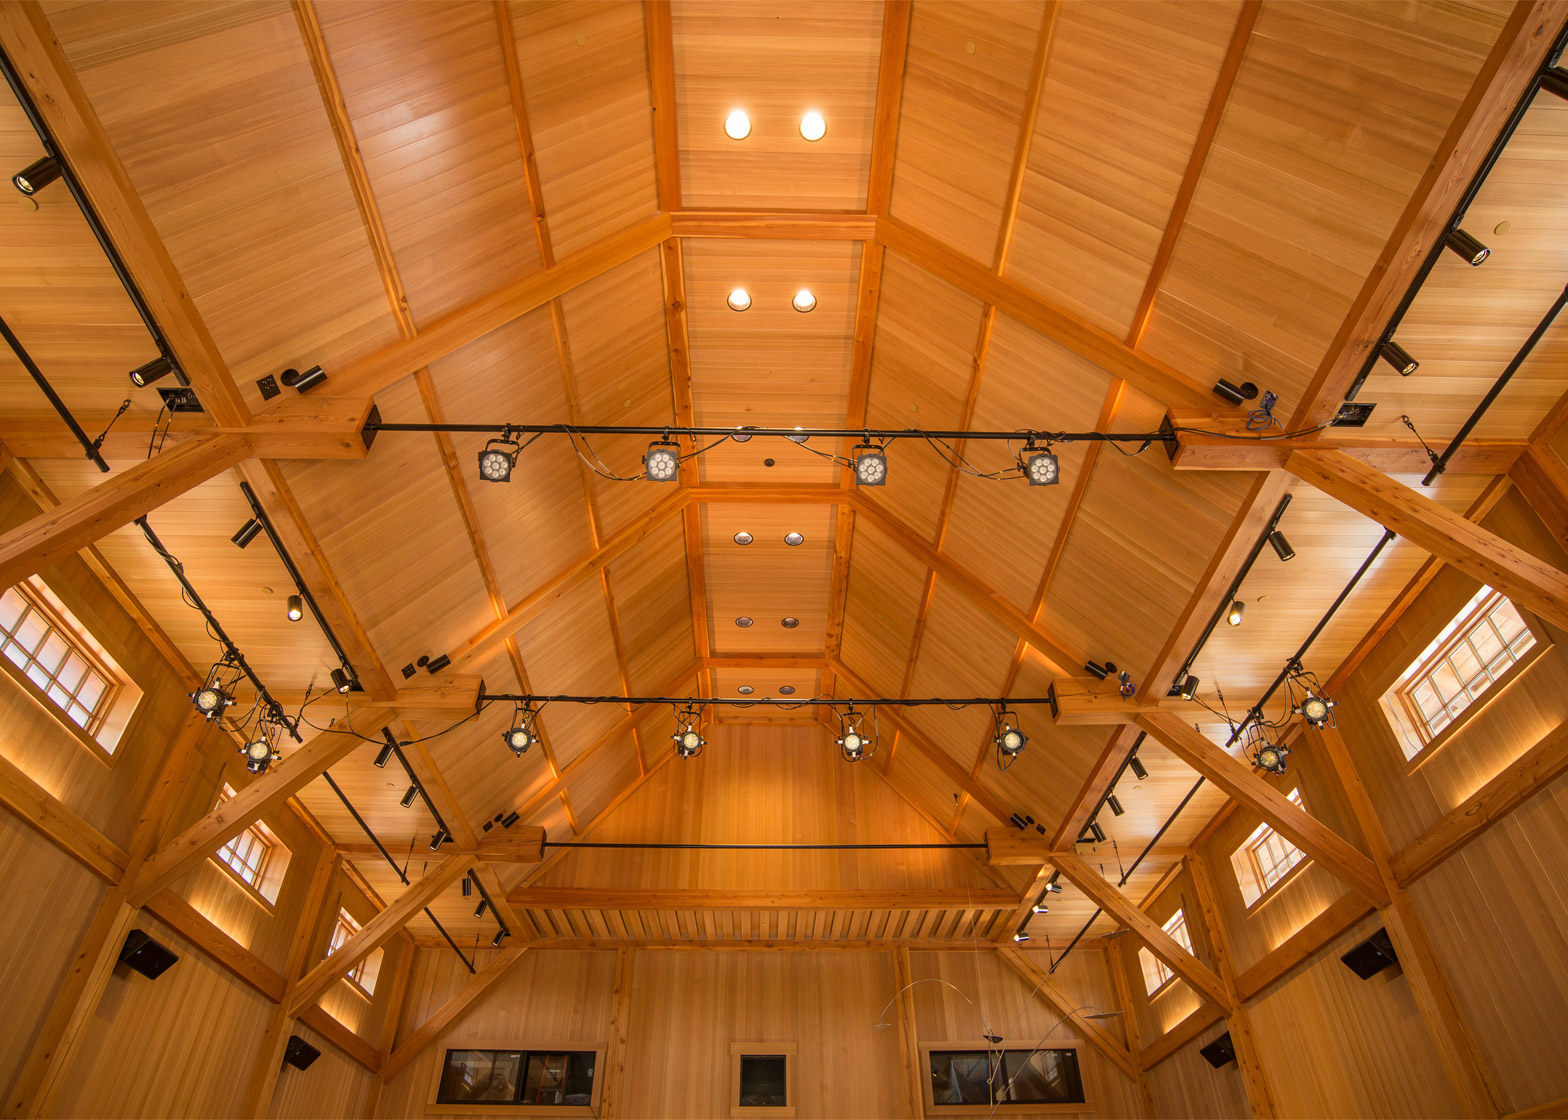 The Olivier Music Barn at Tippet Rise Arts Centre